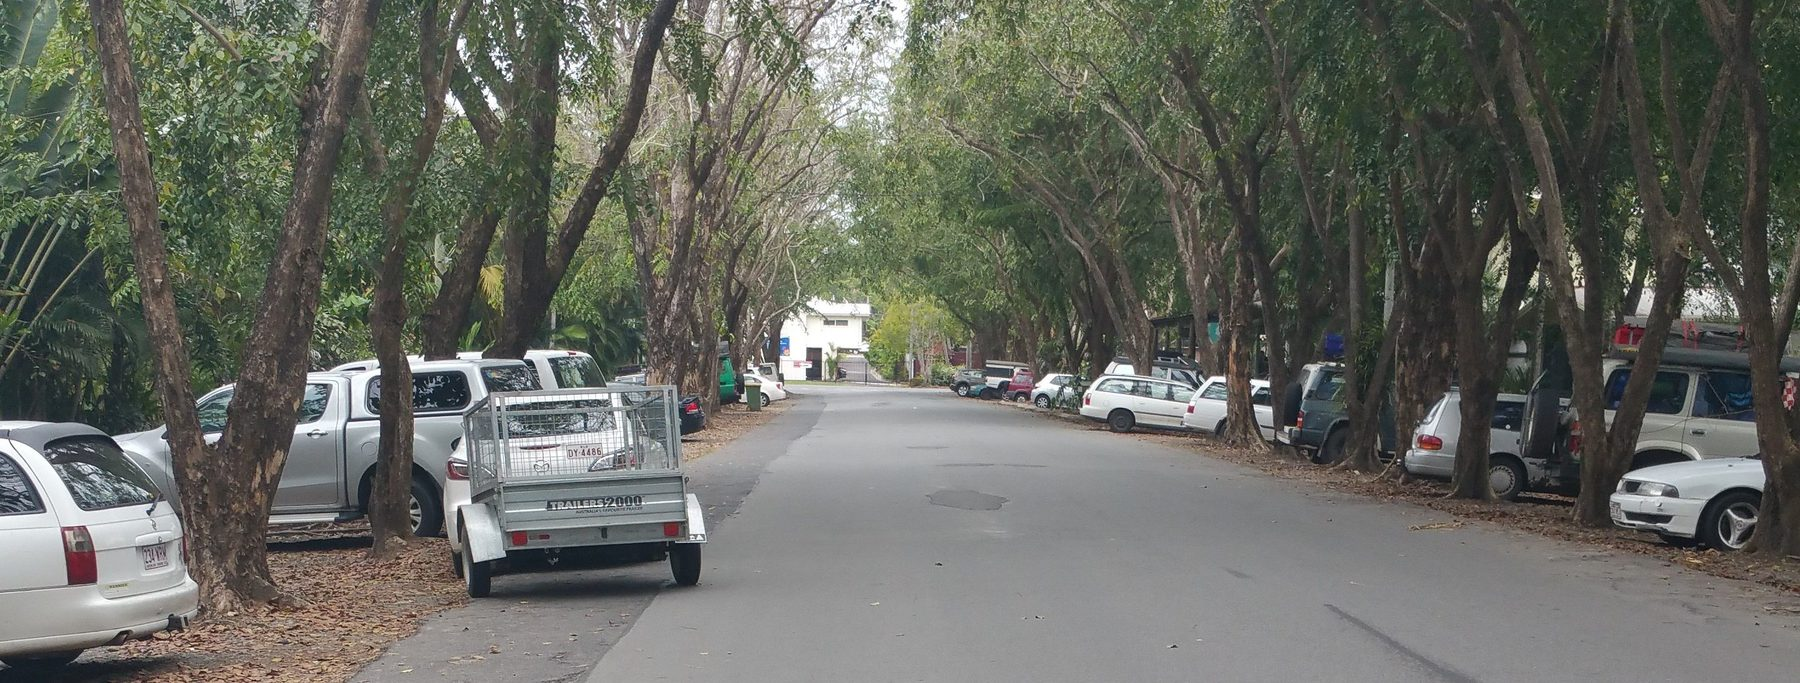 Warner Street Upgrade out for consultation